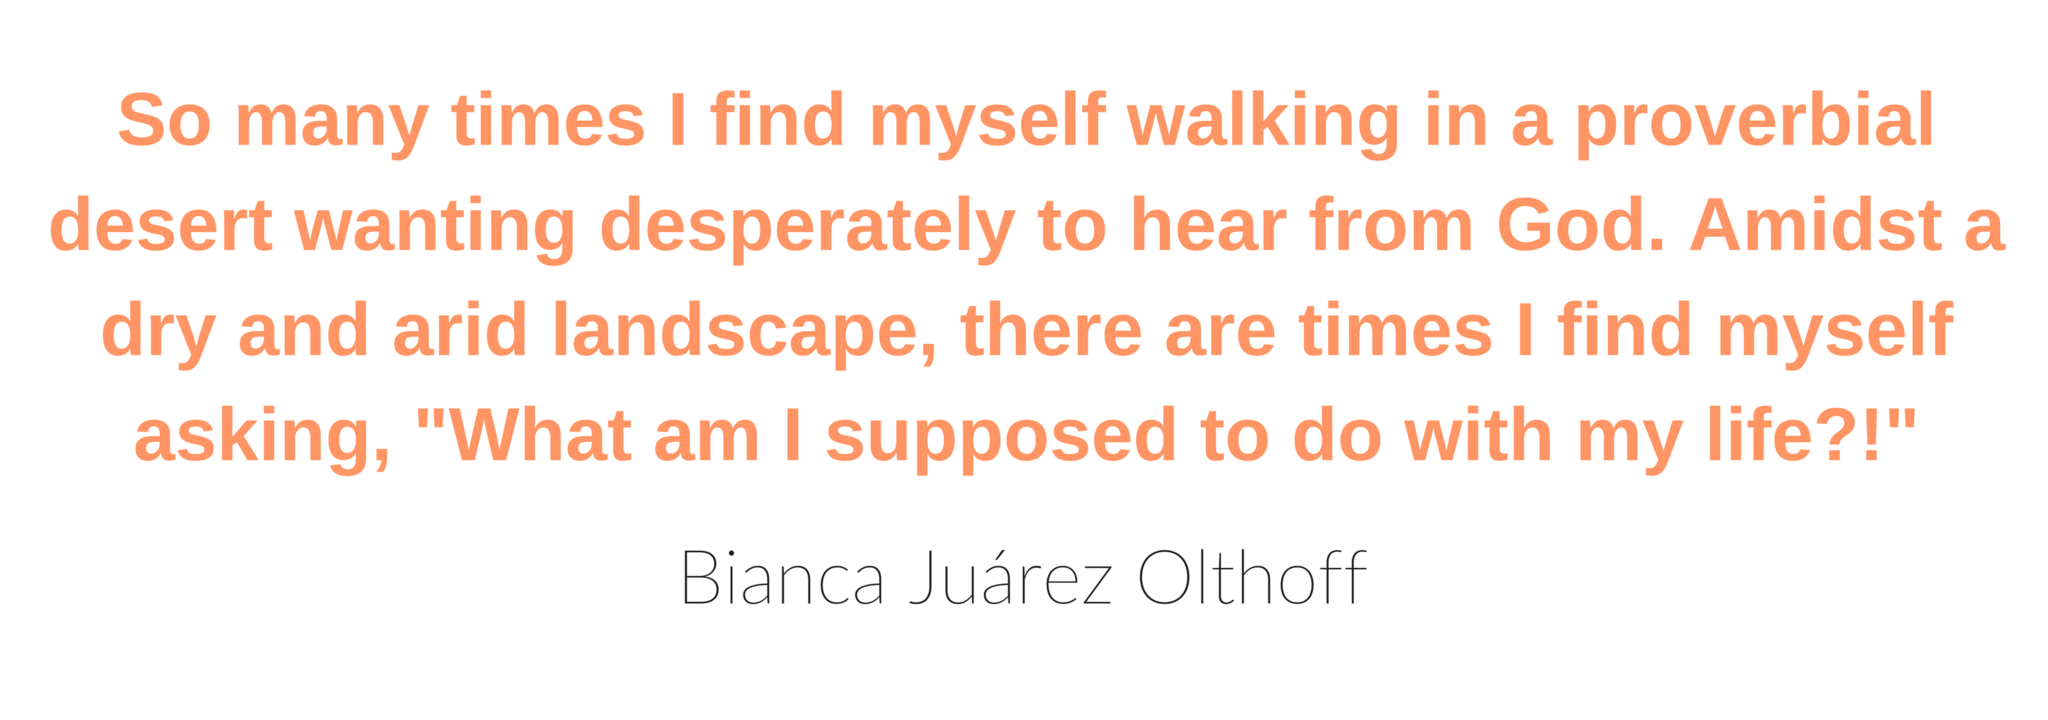 So many times I find myself walking in a proverbial desert wanting desperately to hear from God. Amidst a dry and arid landscape, there are times I find myself asking, 'What am I supposed to do with my life?!' - Bianca Juárez Olthoff